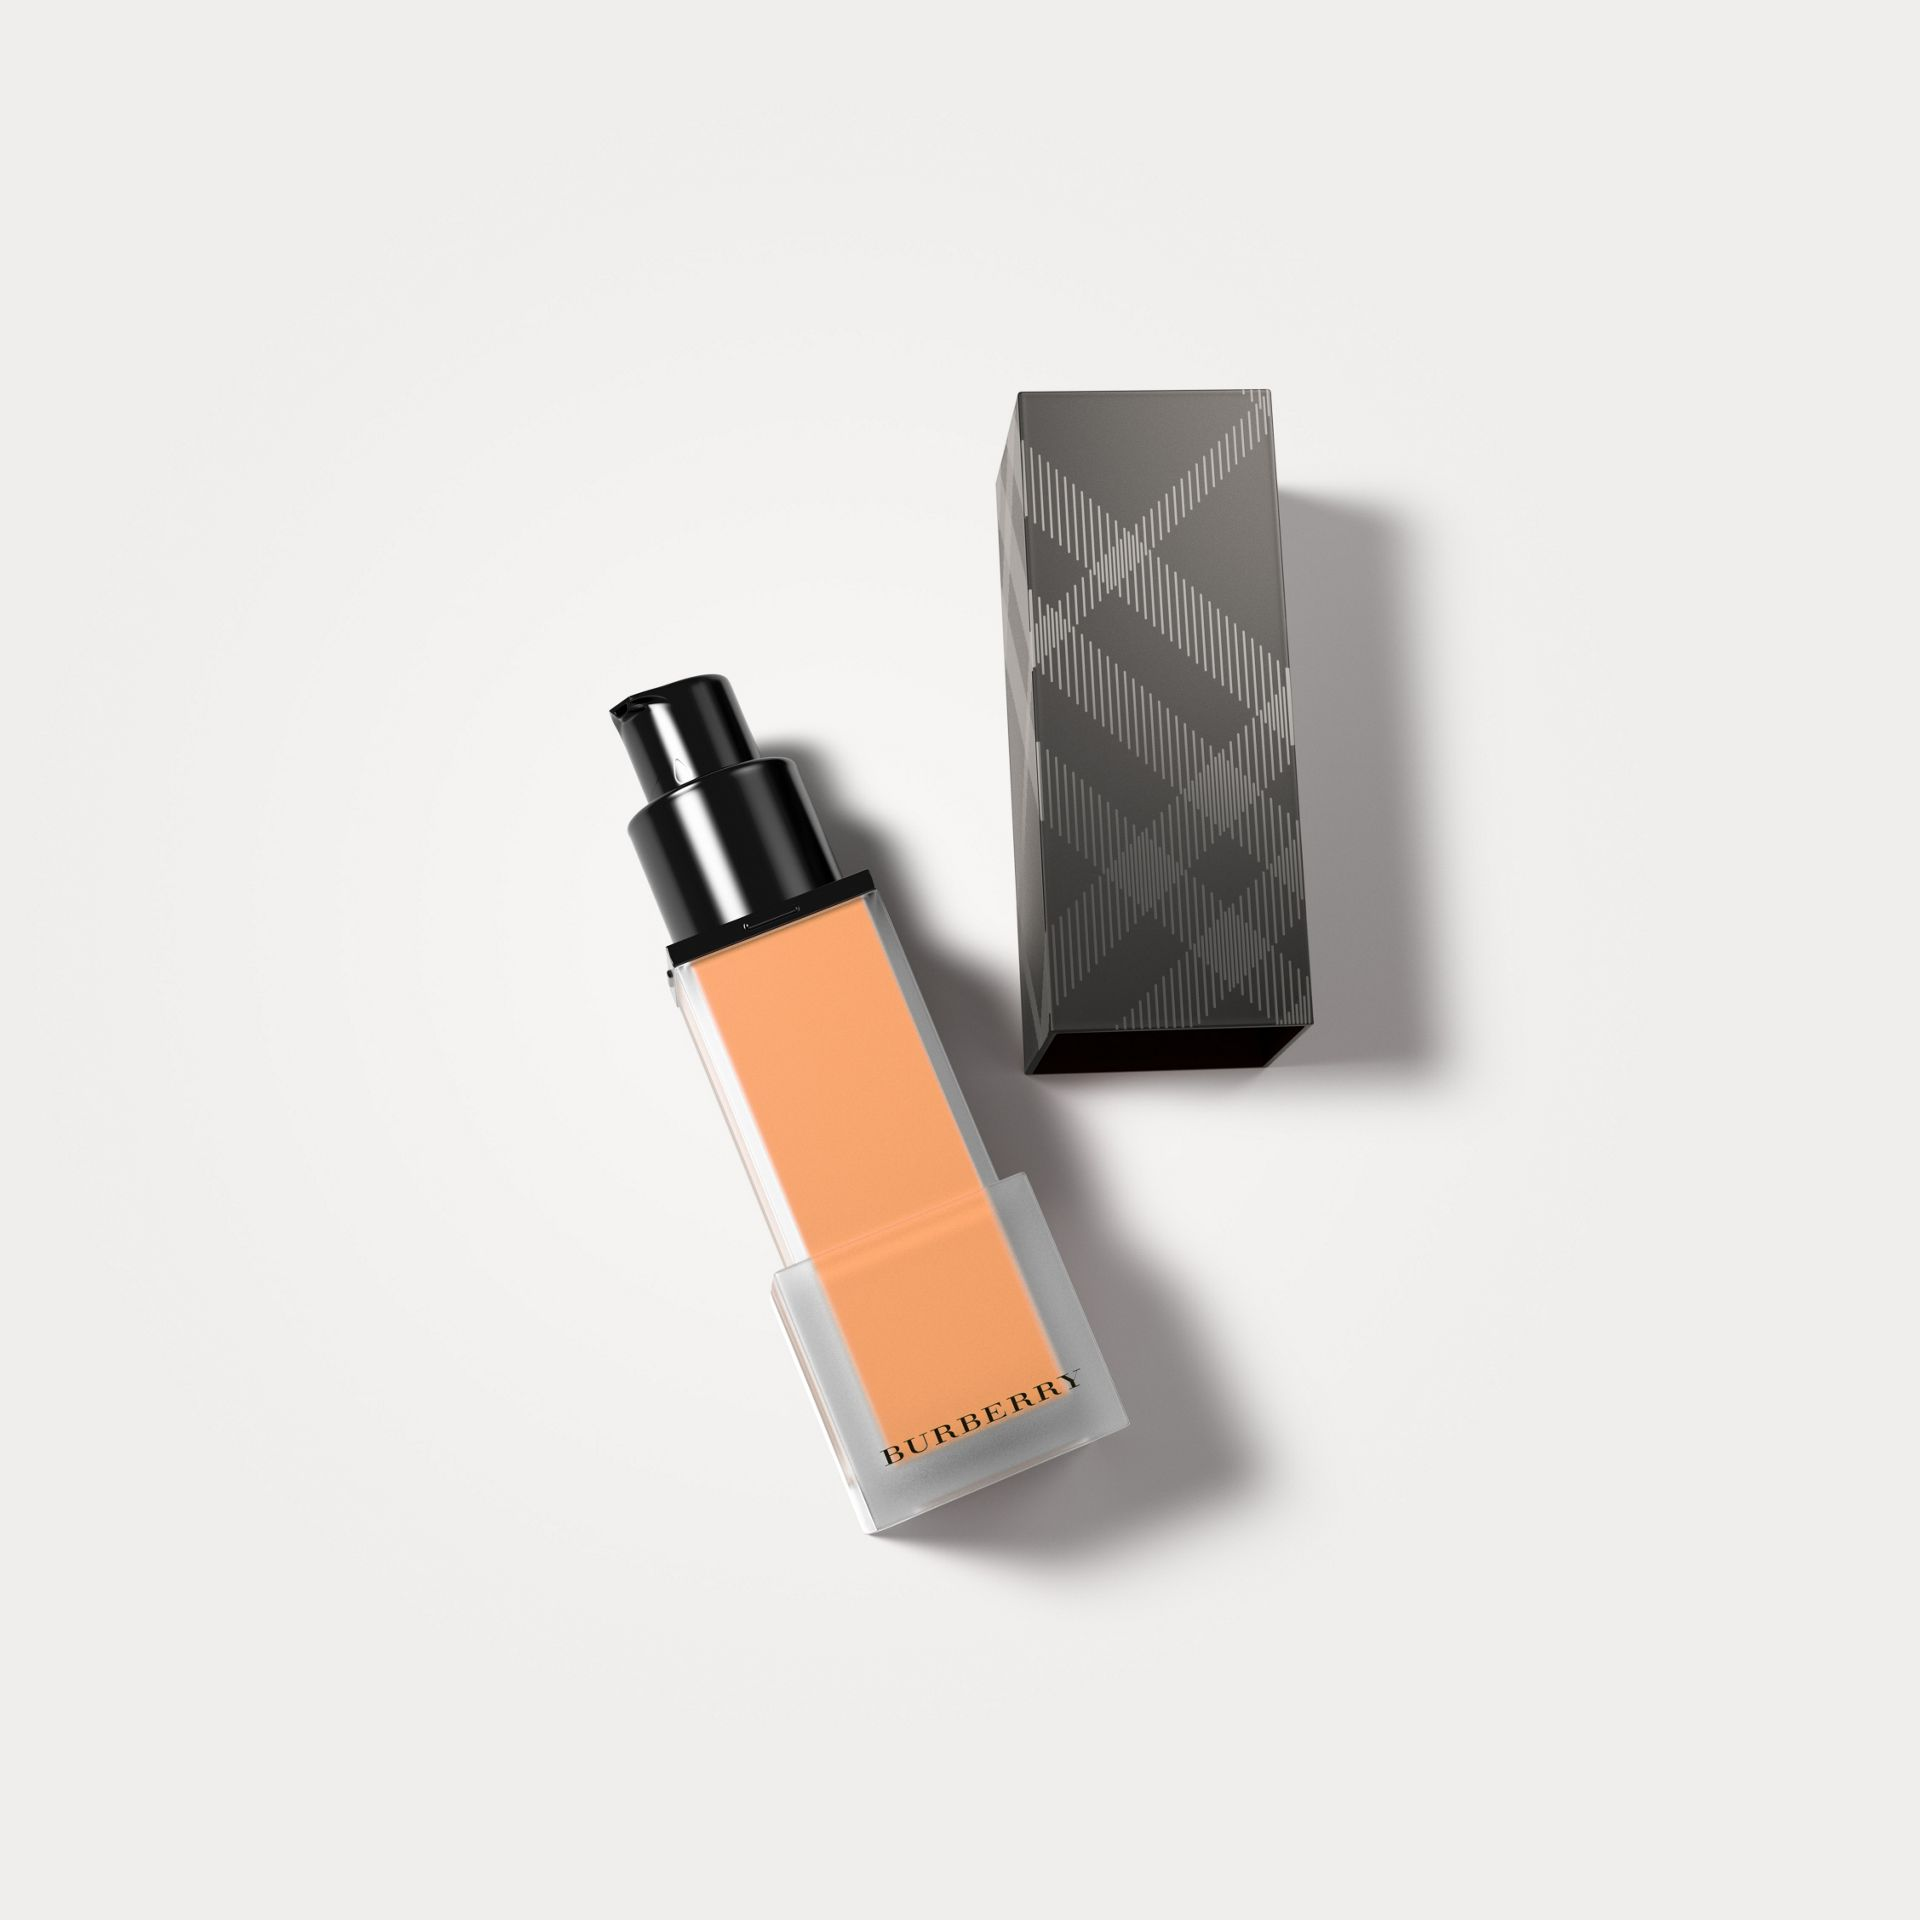 Almond 43 Burberry Cashmere SPF 20 – Almond No.43 - gallery image 1